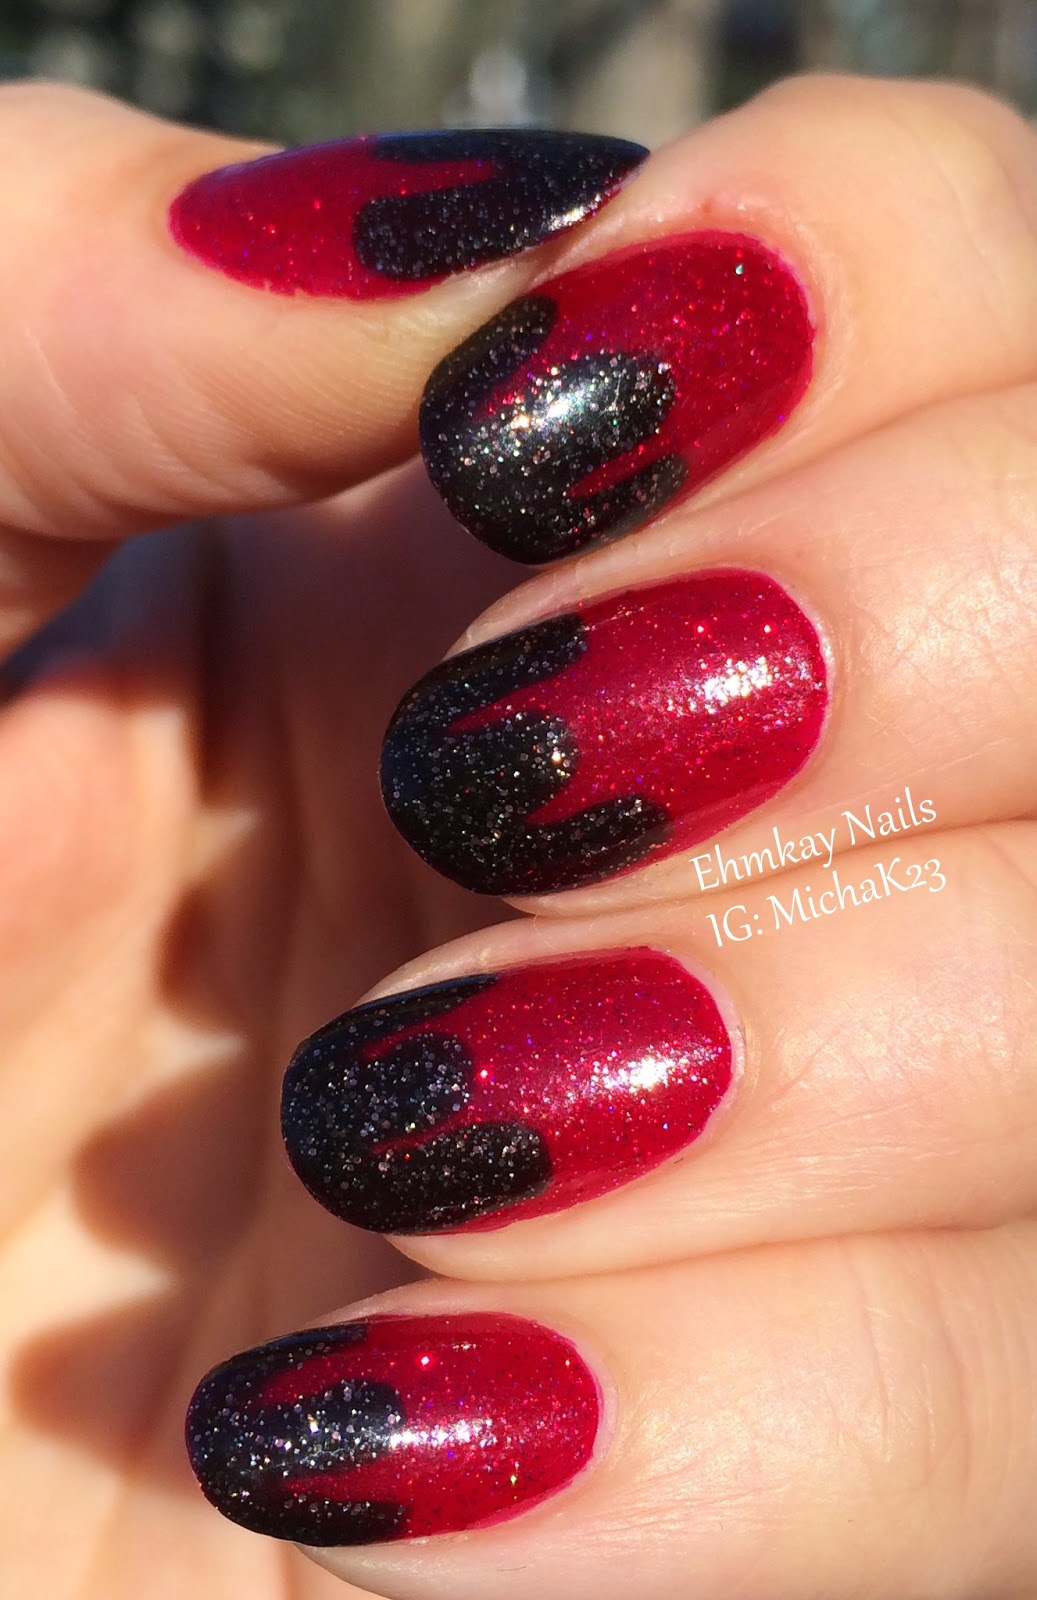 Ehmkay Nails: Chocolate Dipped Strawberries Nail Art With